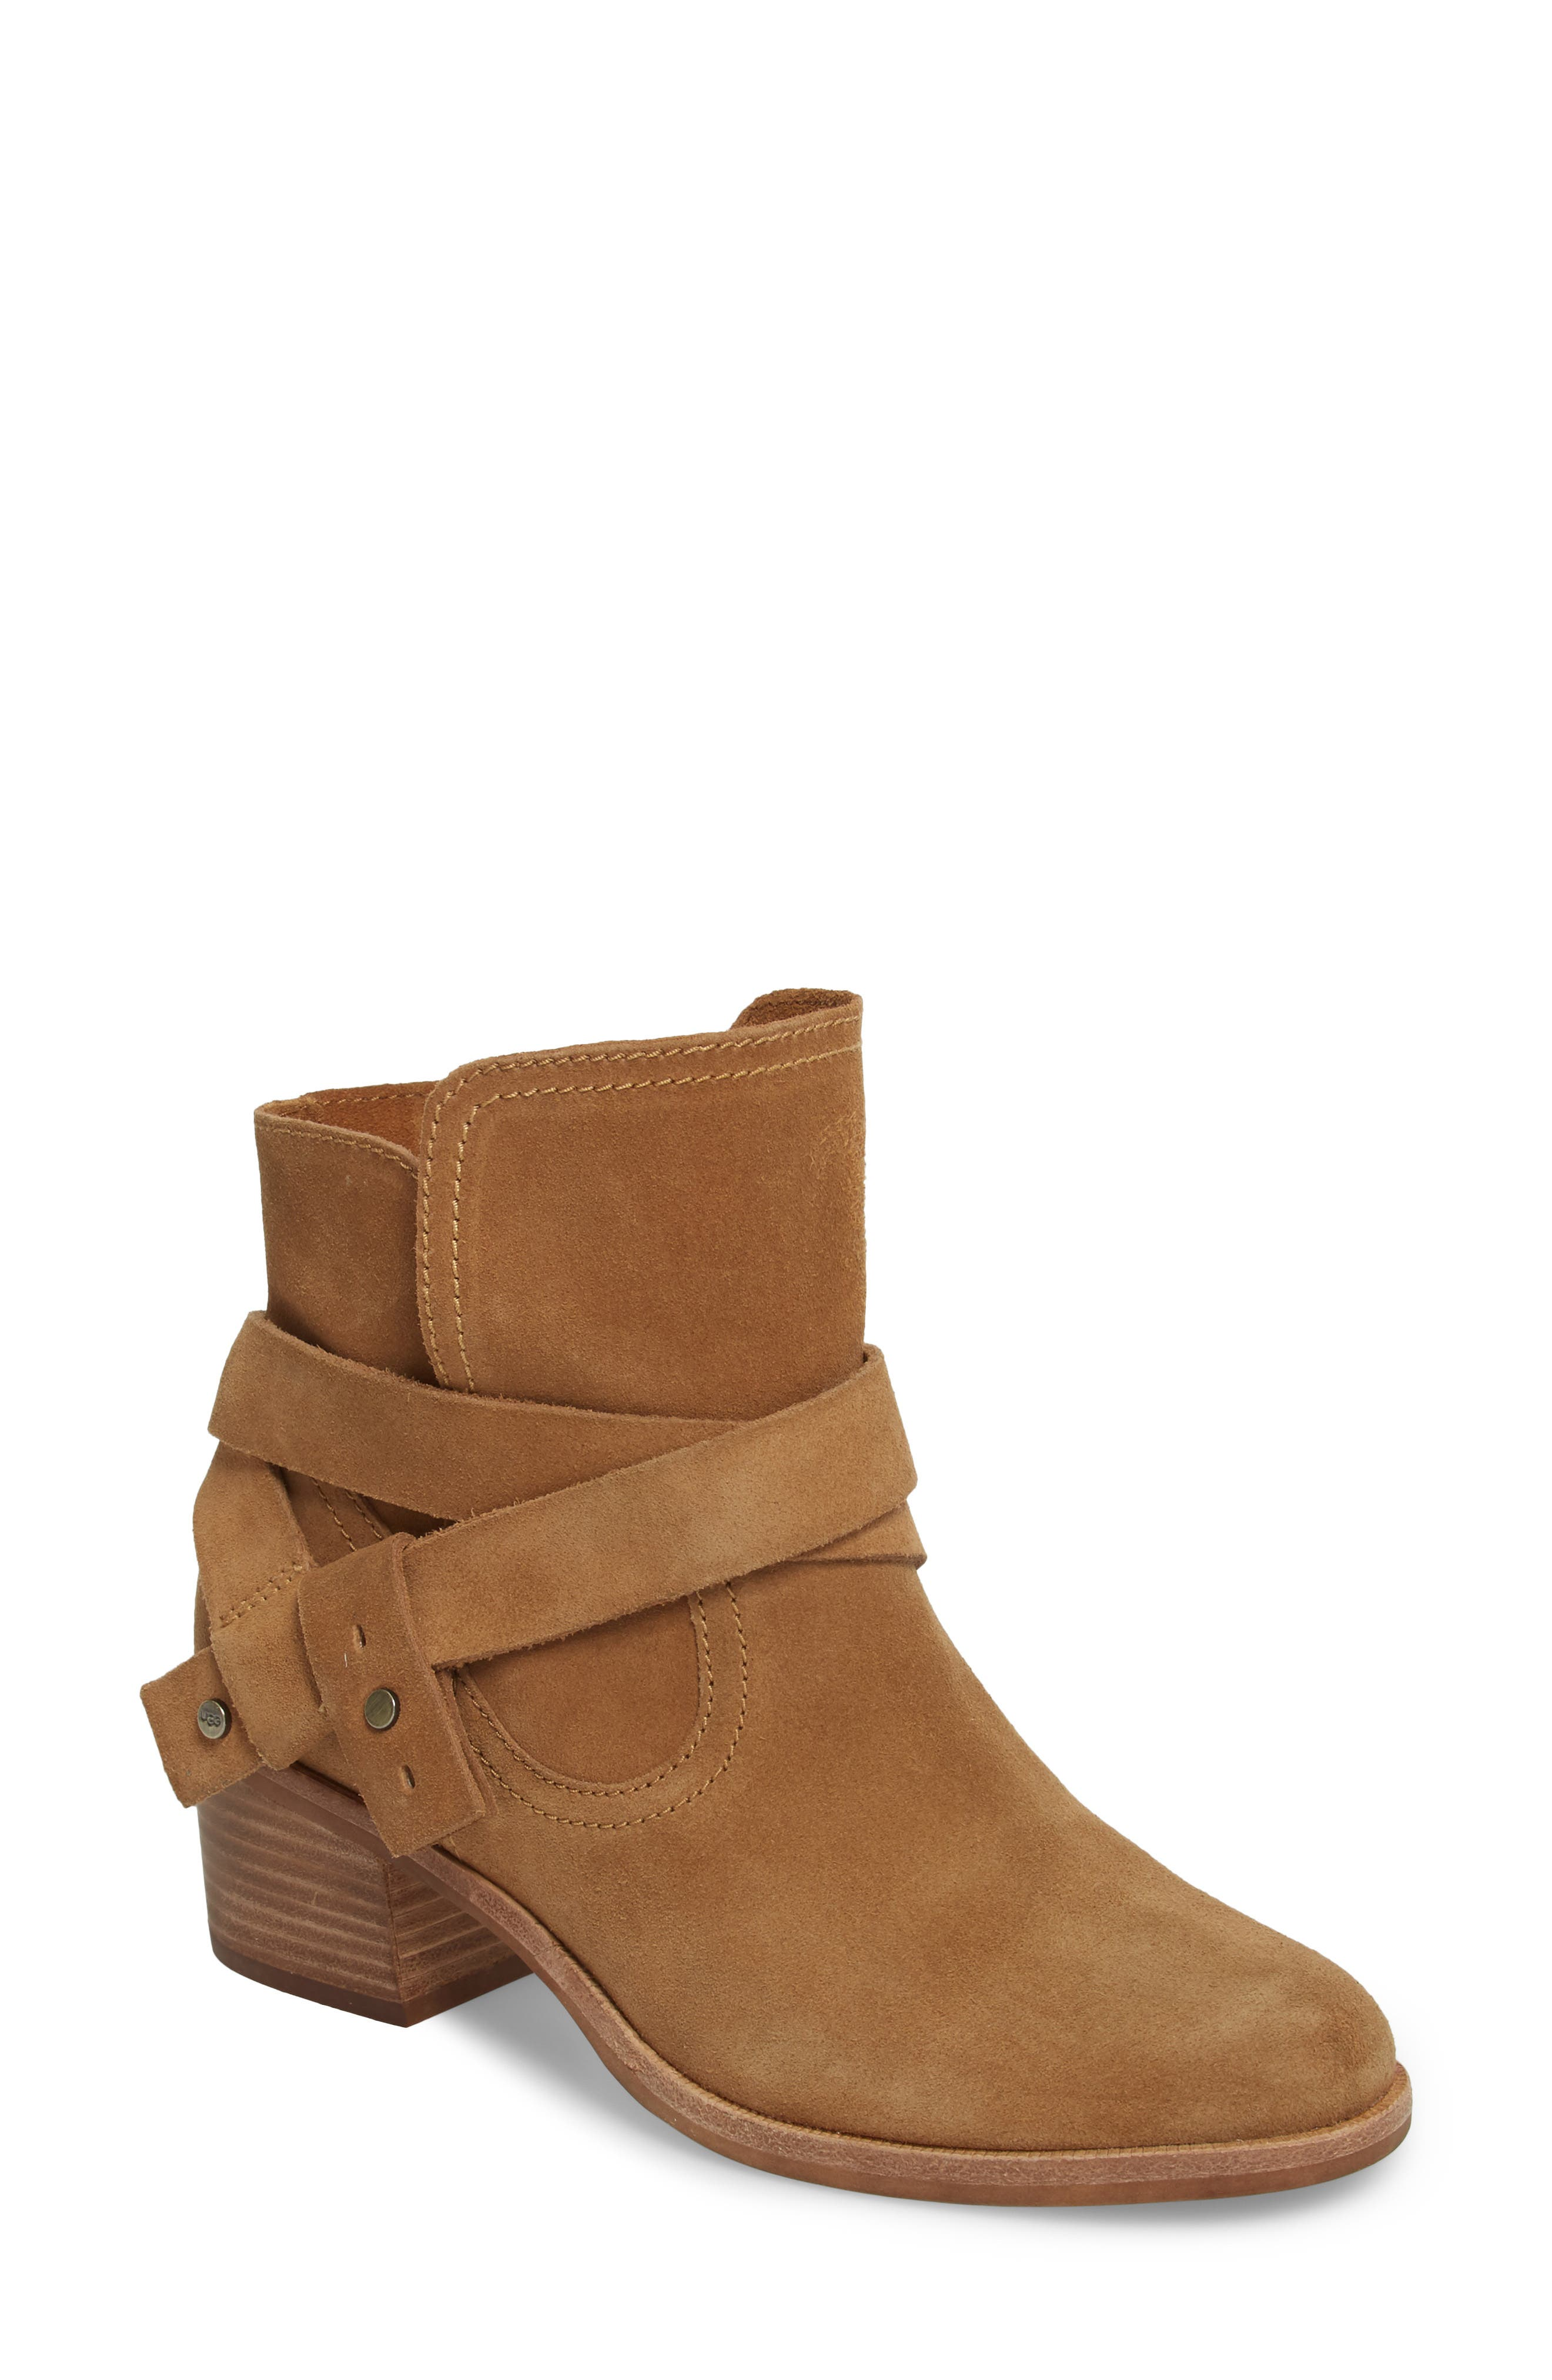 Elora Bootie,                             Main thumbnail 1, color,                             Chestnut Suede